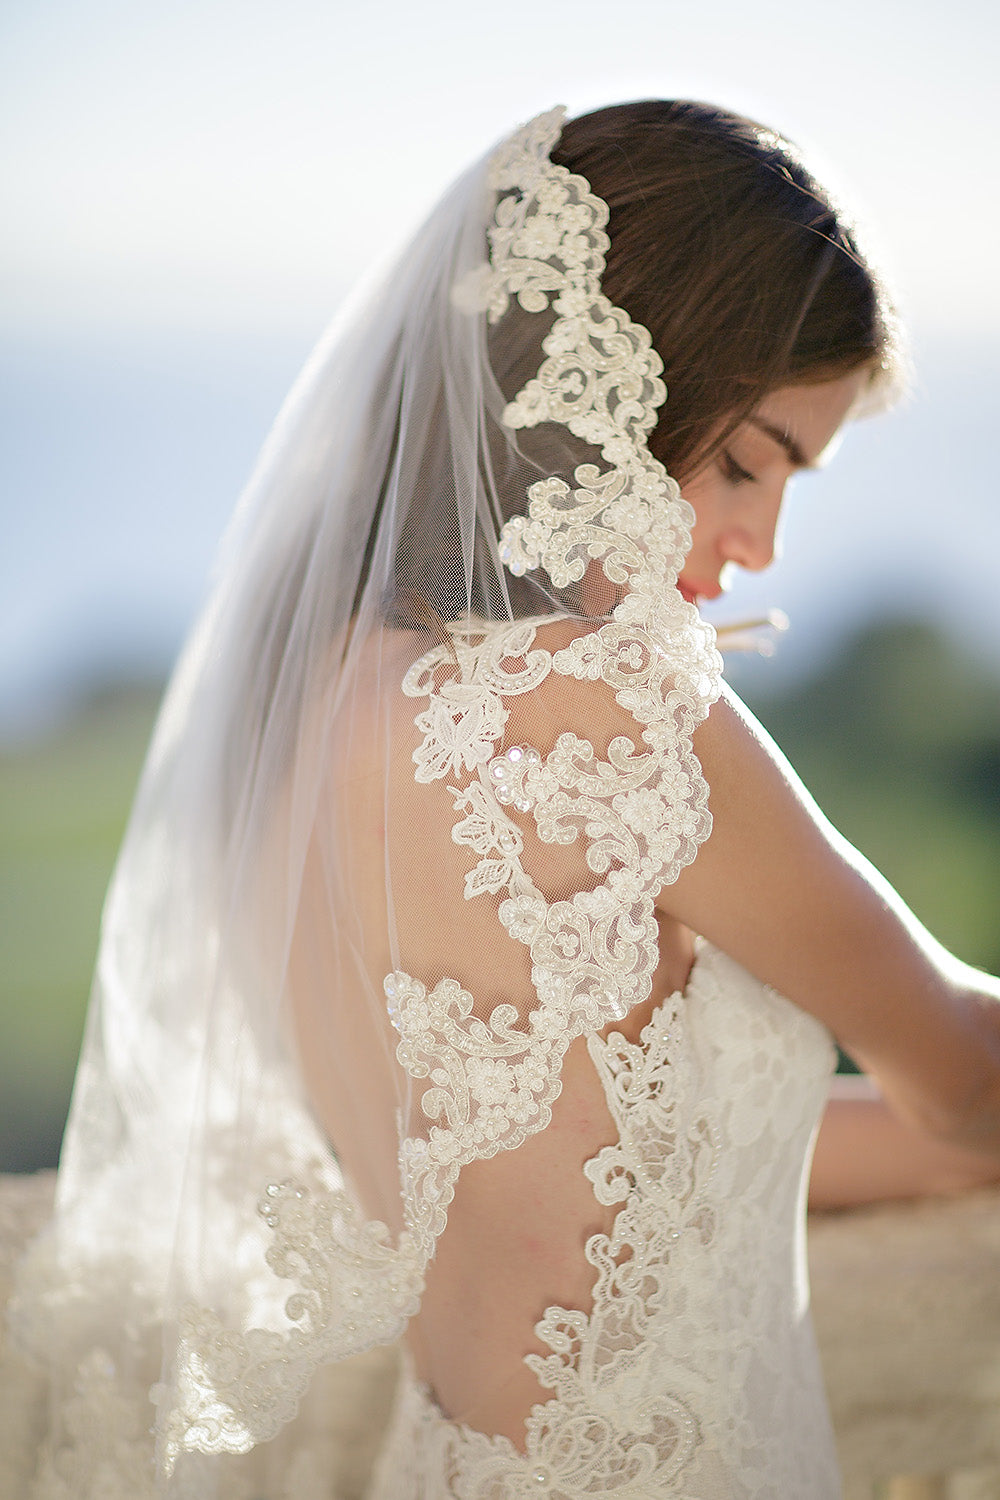 Wedding veil do's and dont's